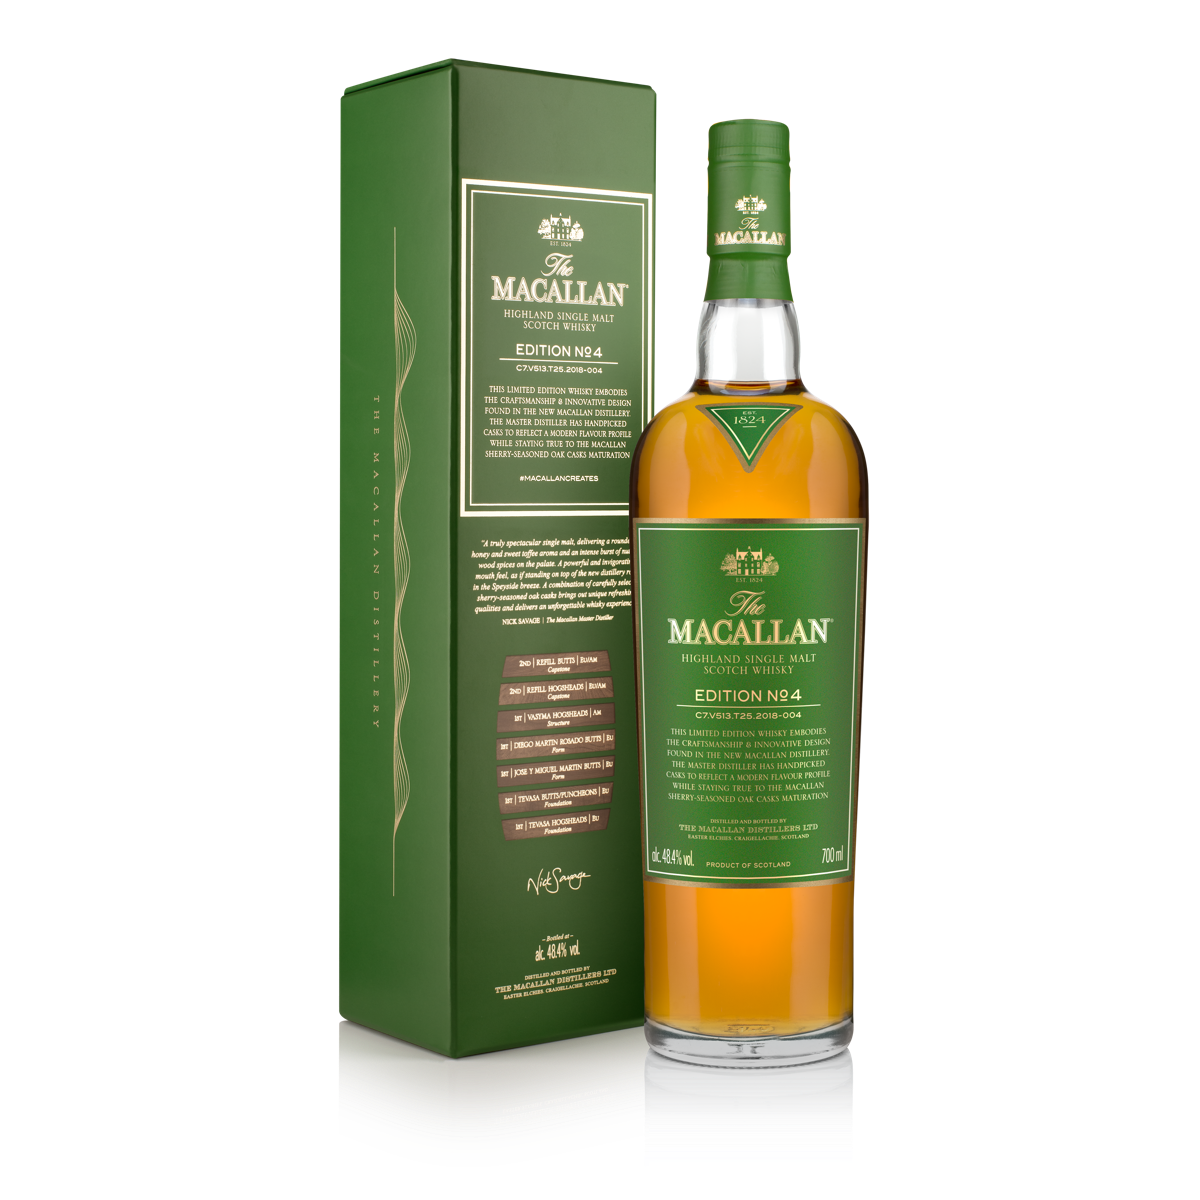 macallan edition no 4 how many bottles